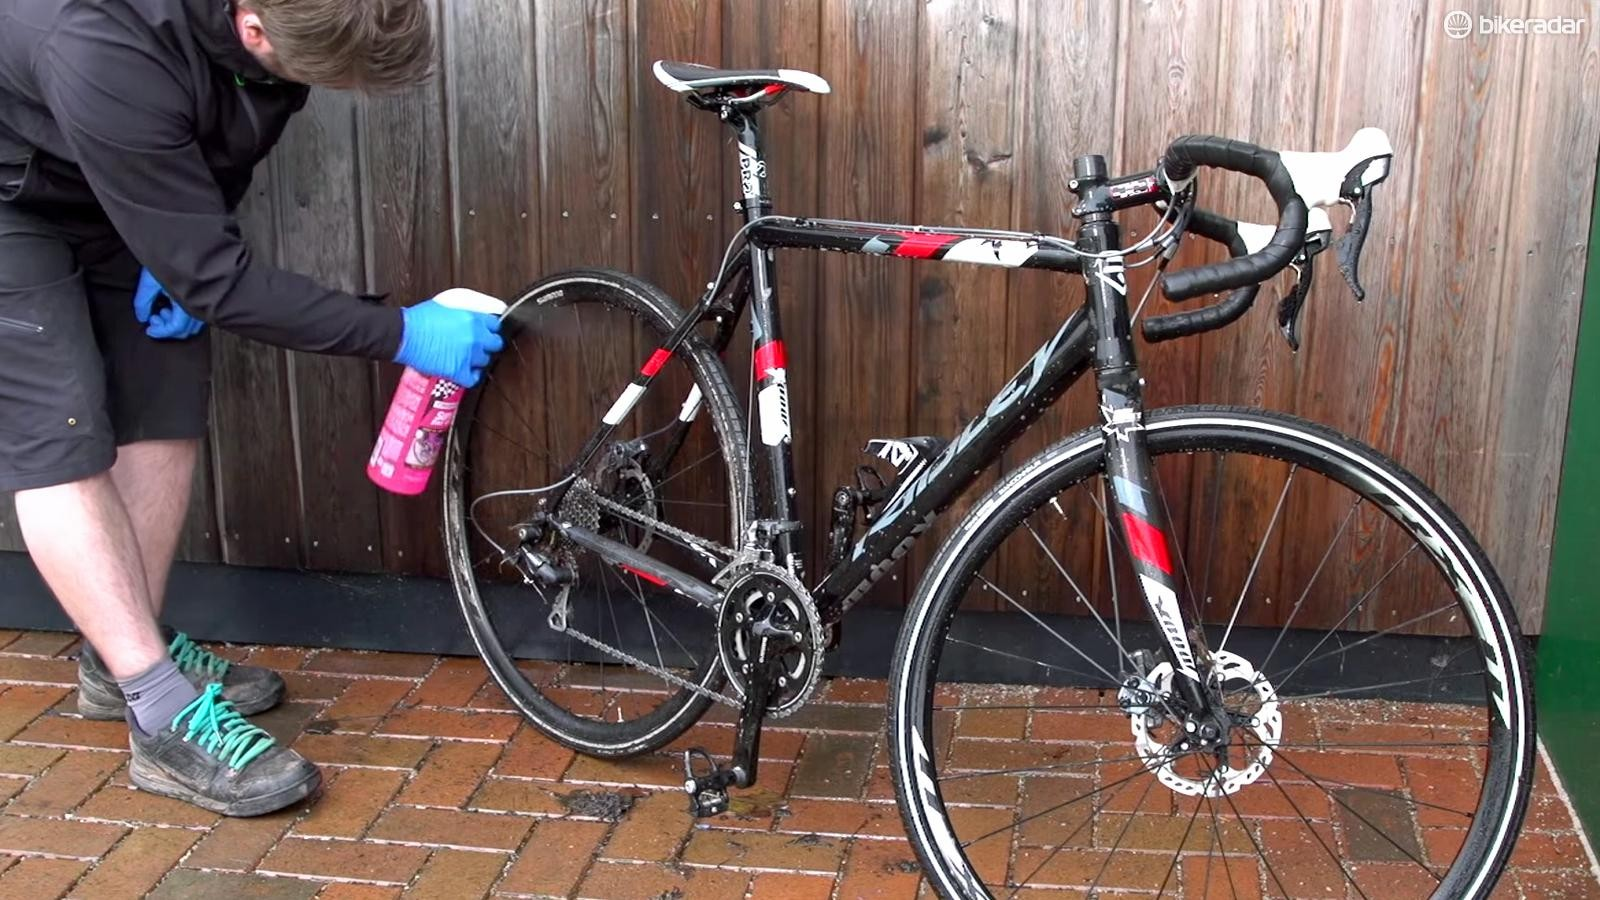 Spray the whole bike with bike cleaning fluid